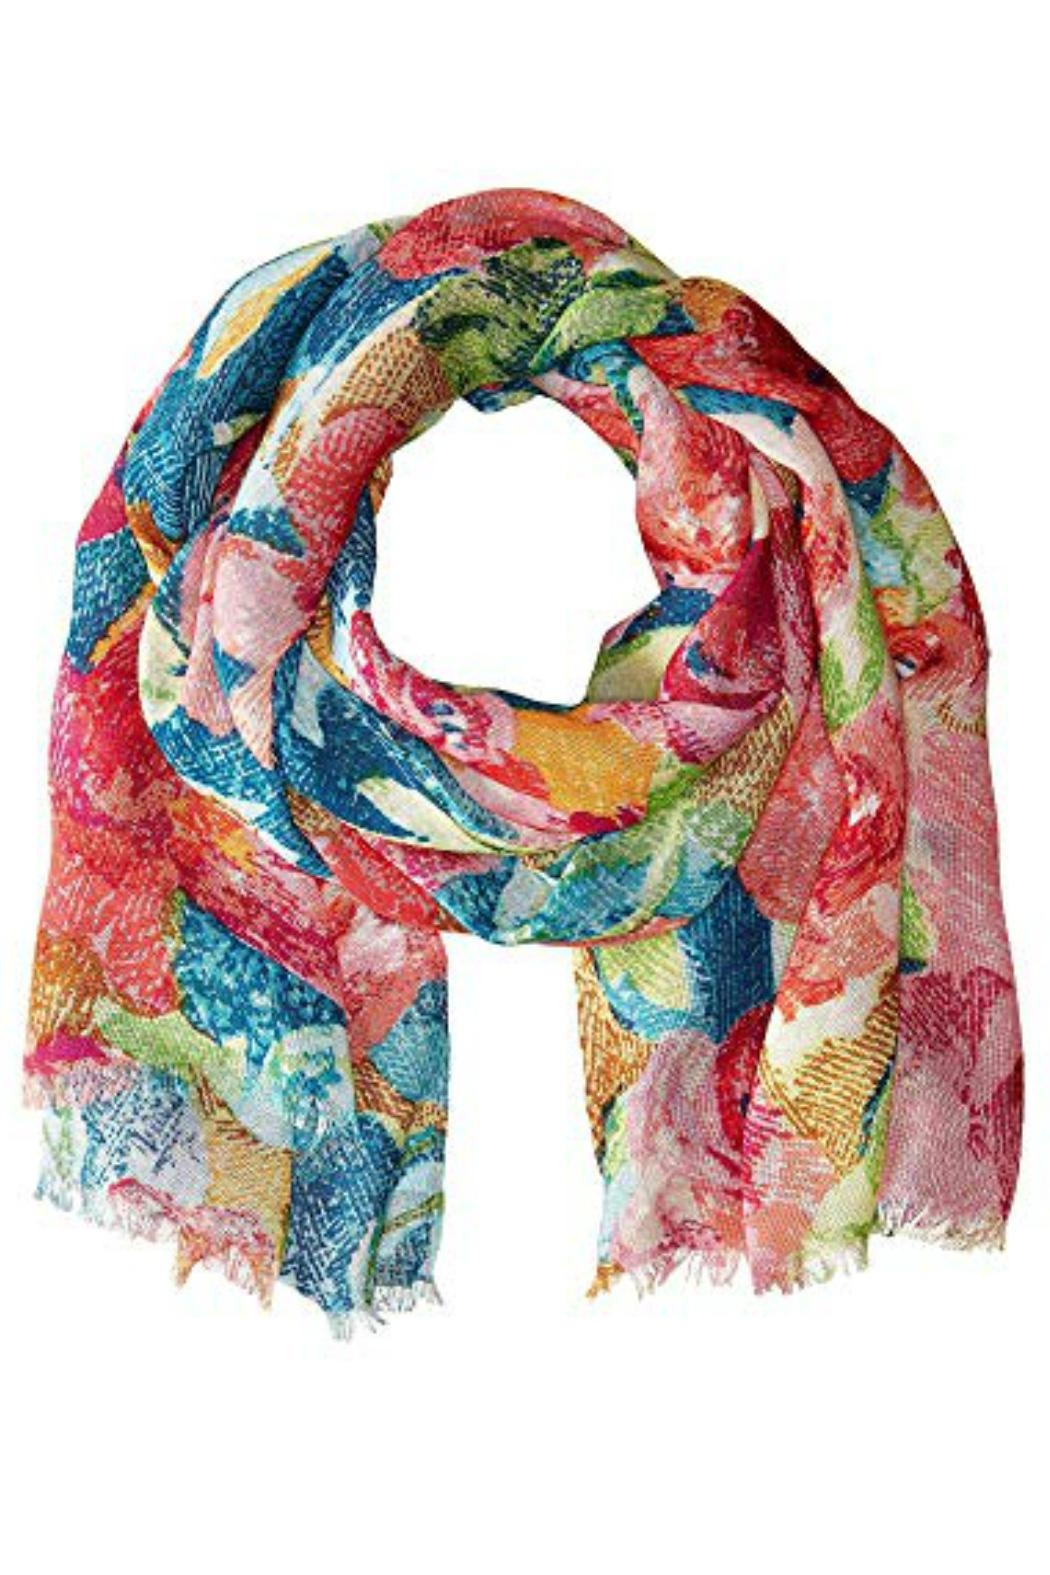 Vera Bradley Superbloom Soft Scarf from Kentucky by Mimi s Gift ... 106ce51995